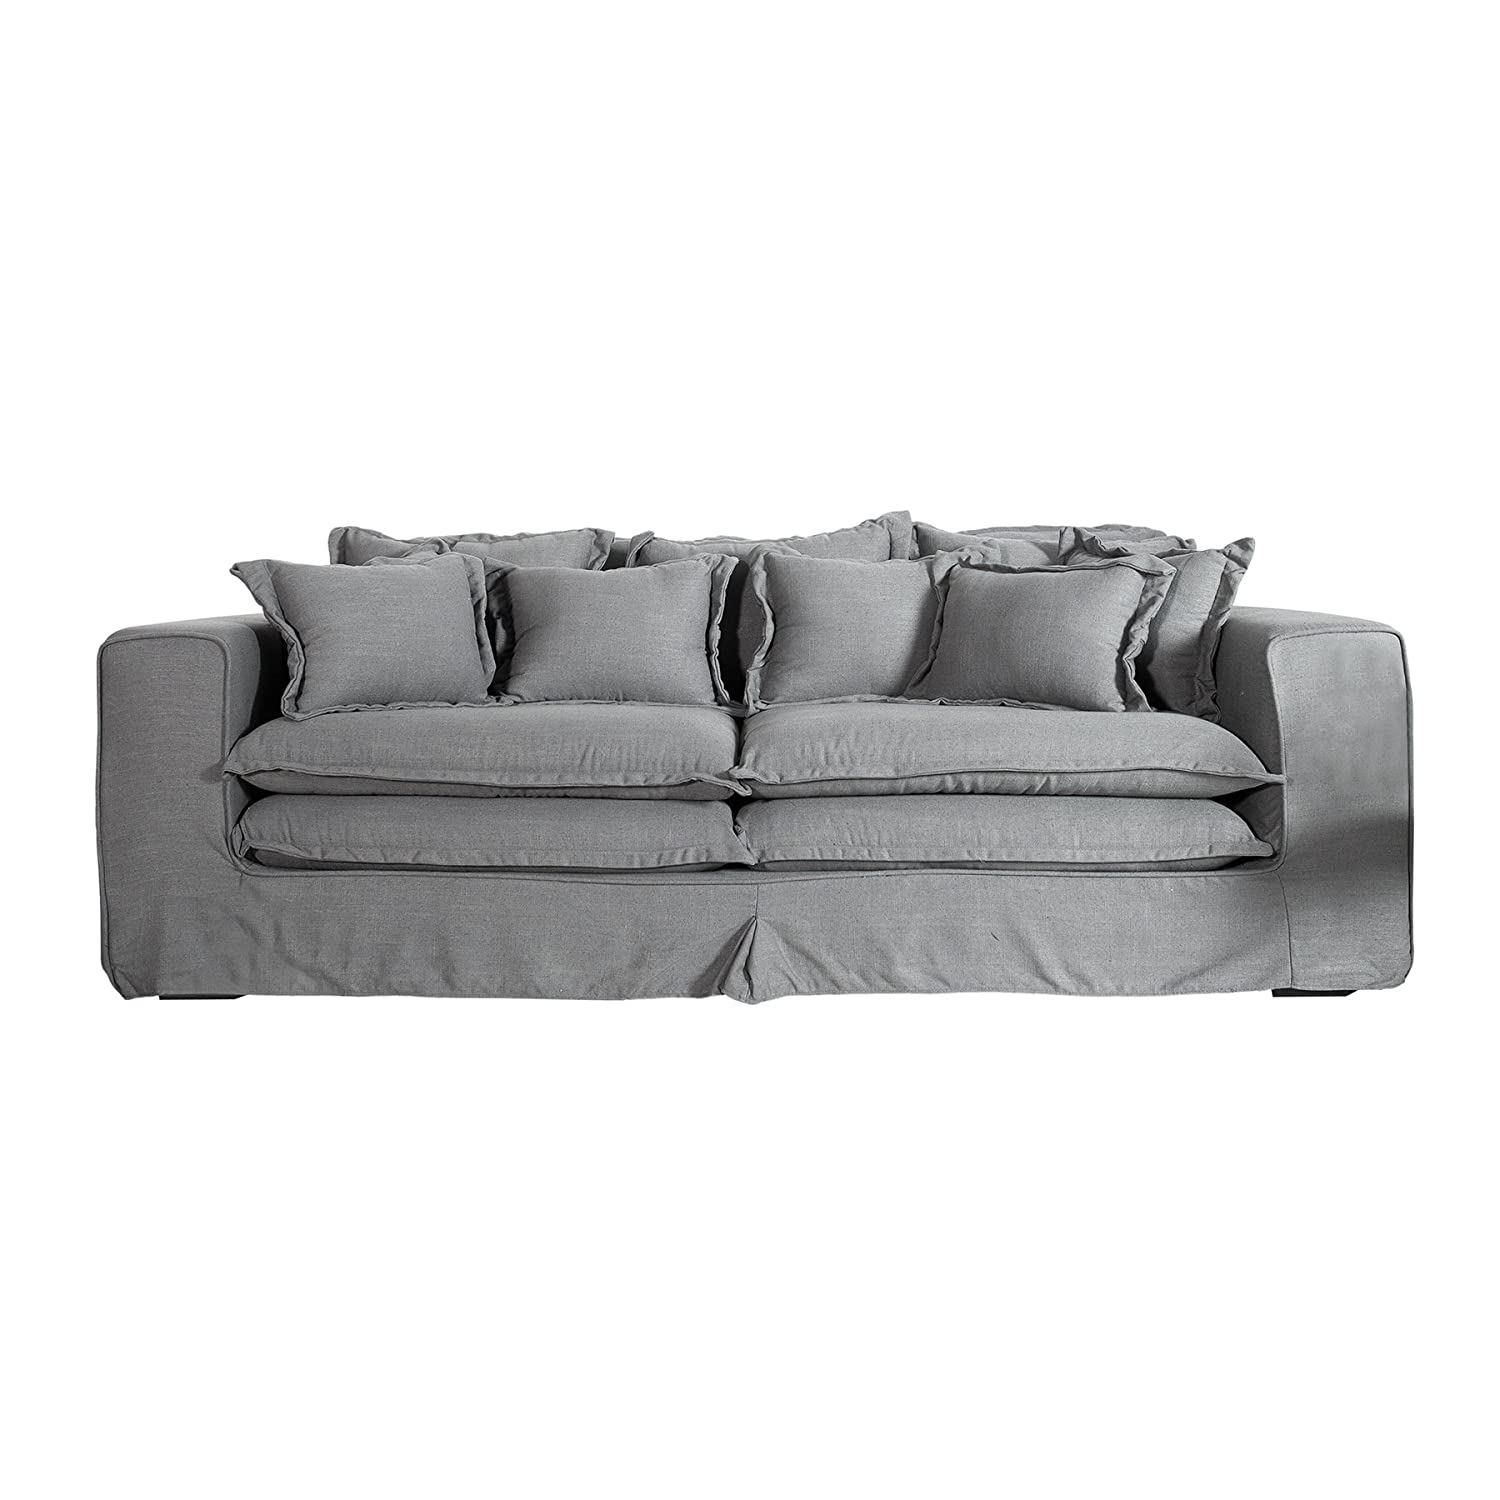 Ledersofa dunkelgrau  Sofas & Couches | Amazon.de